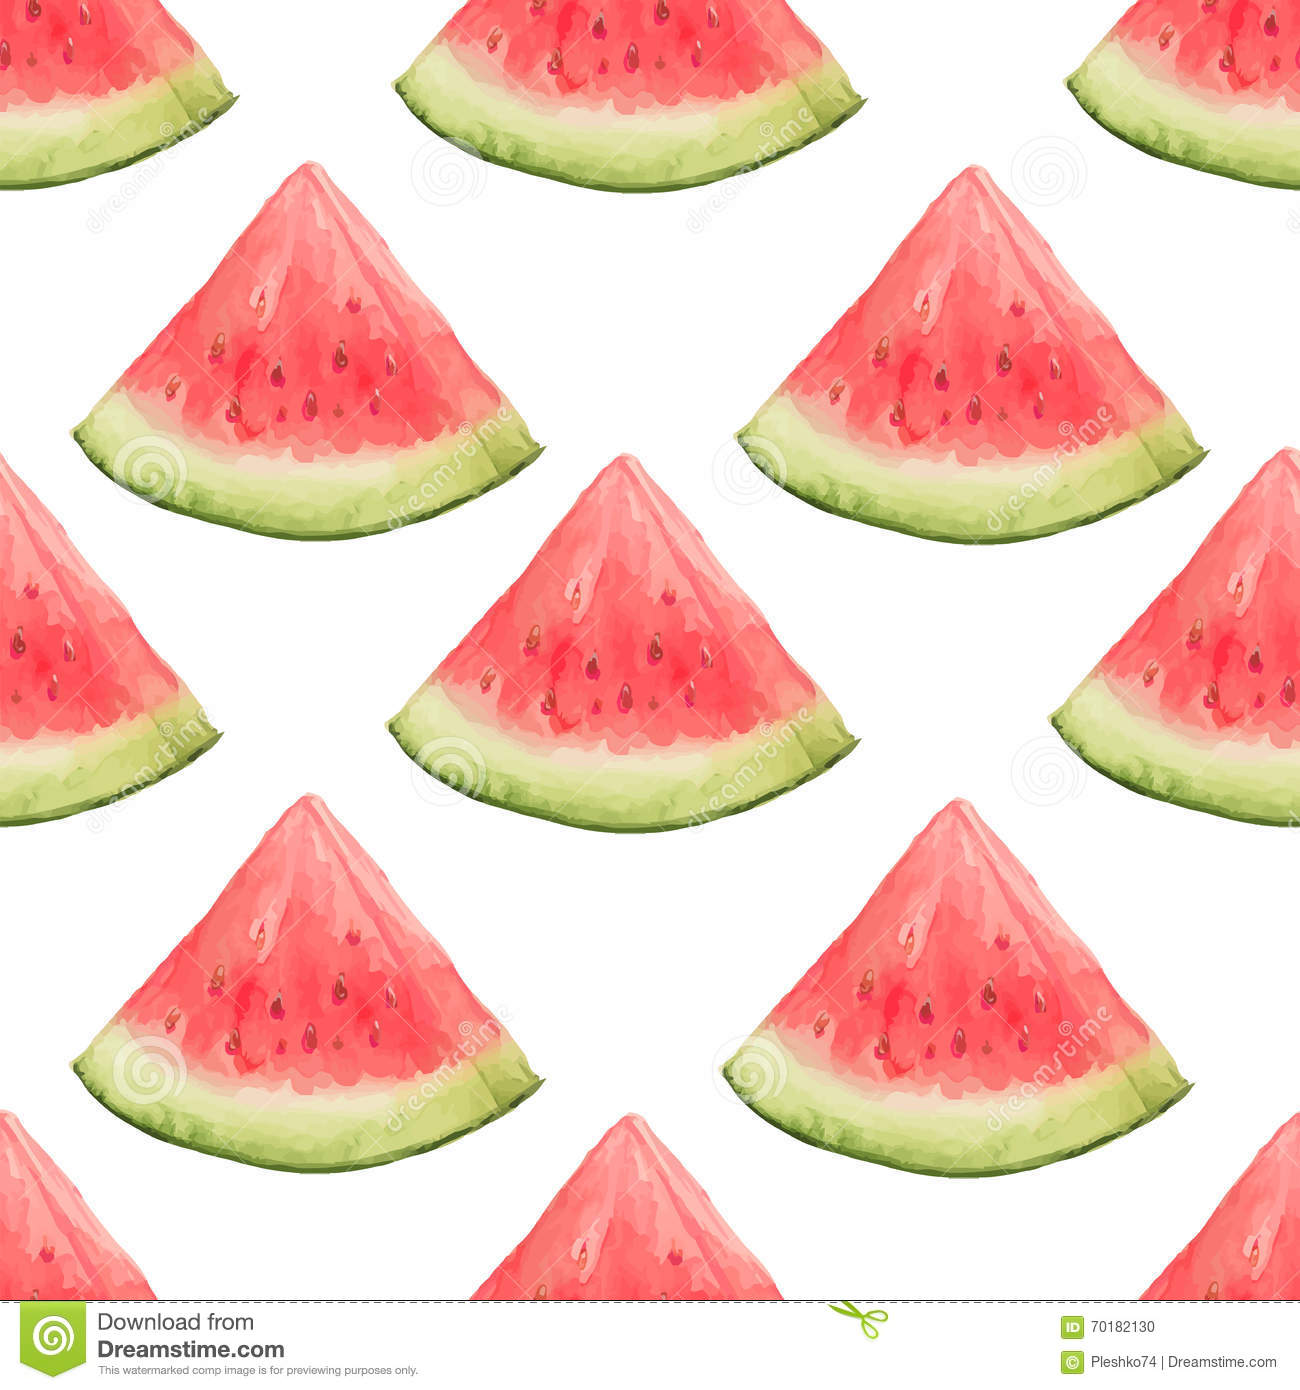 Image Result For Watermelon Slices